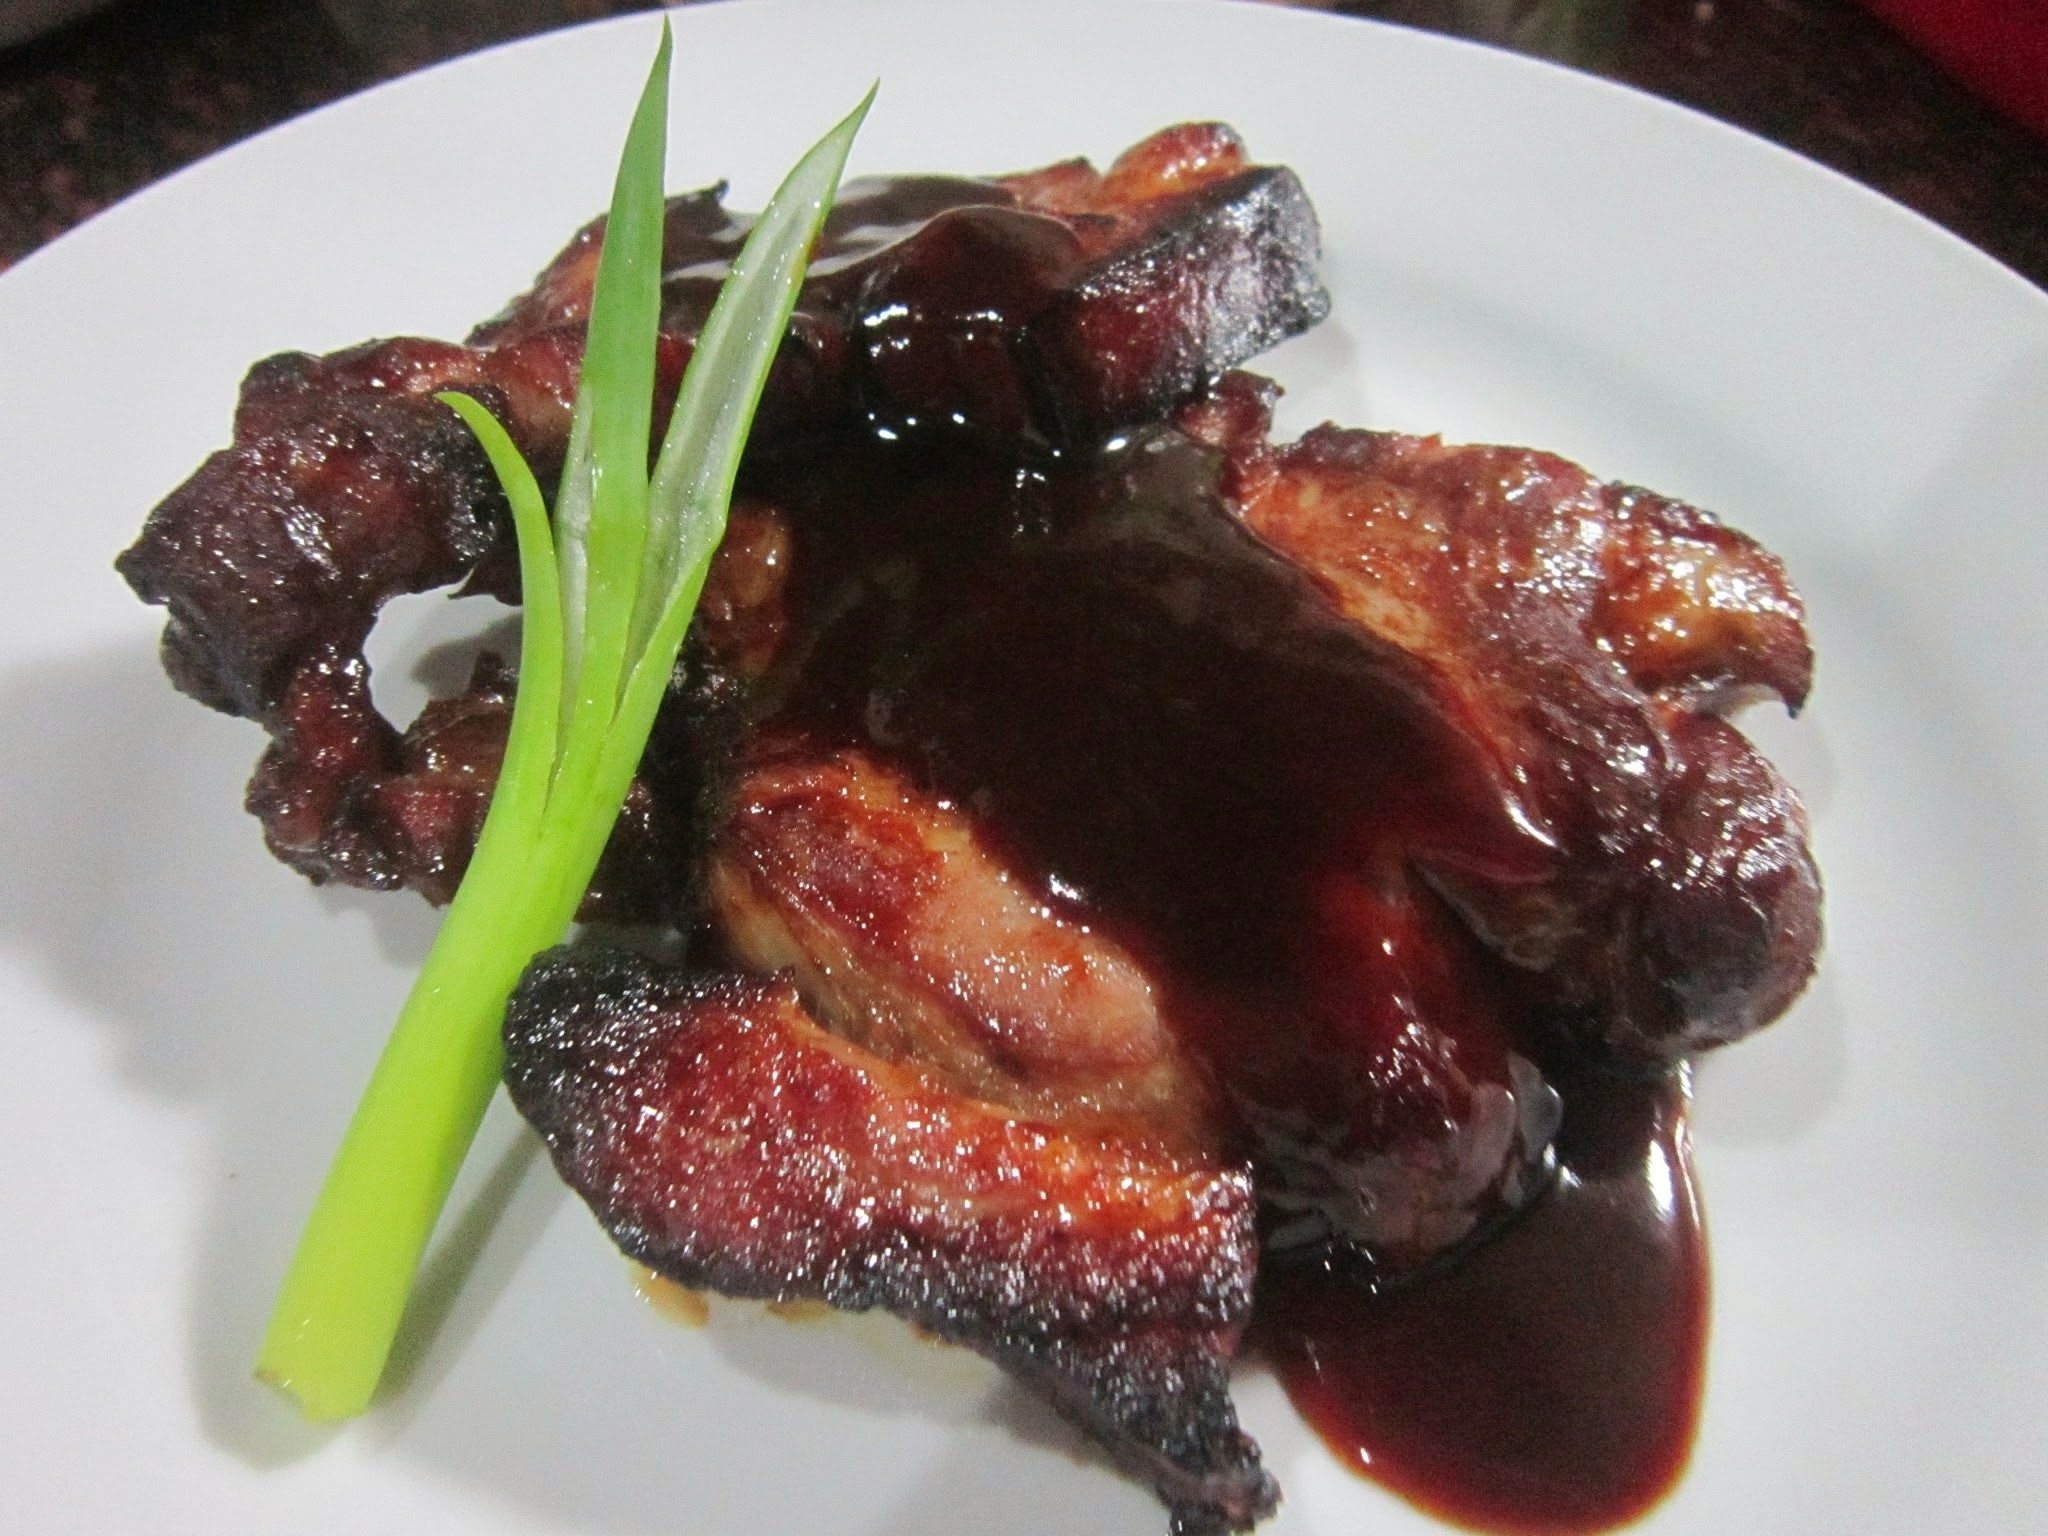 PORK STEAK in BARBEQUE SAUCE